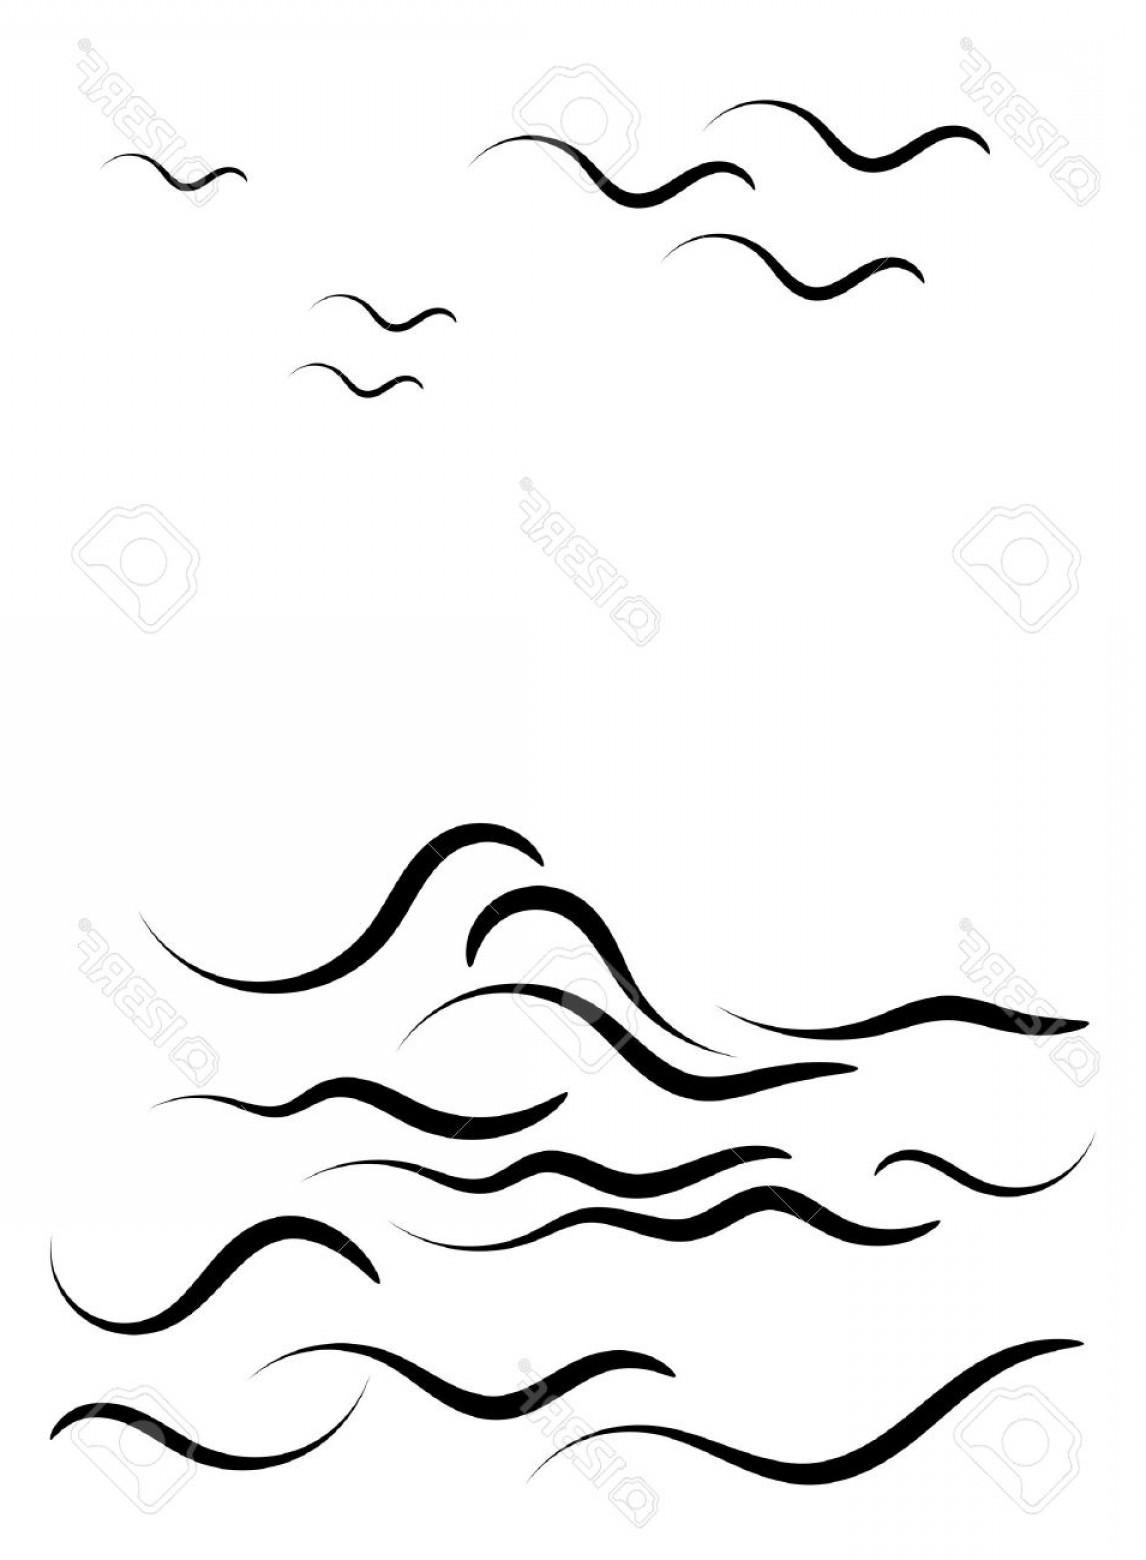 Awesome Ocean Wave Vector: Ocean Waves Clipart Black And White